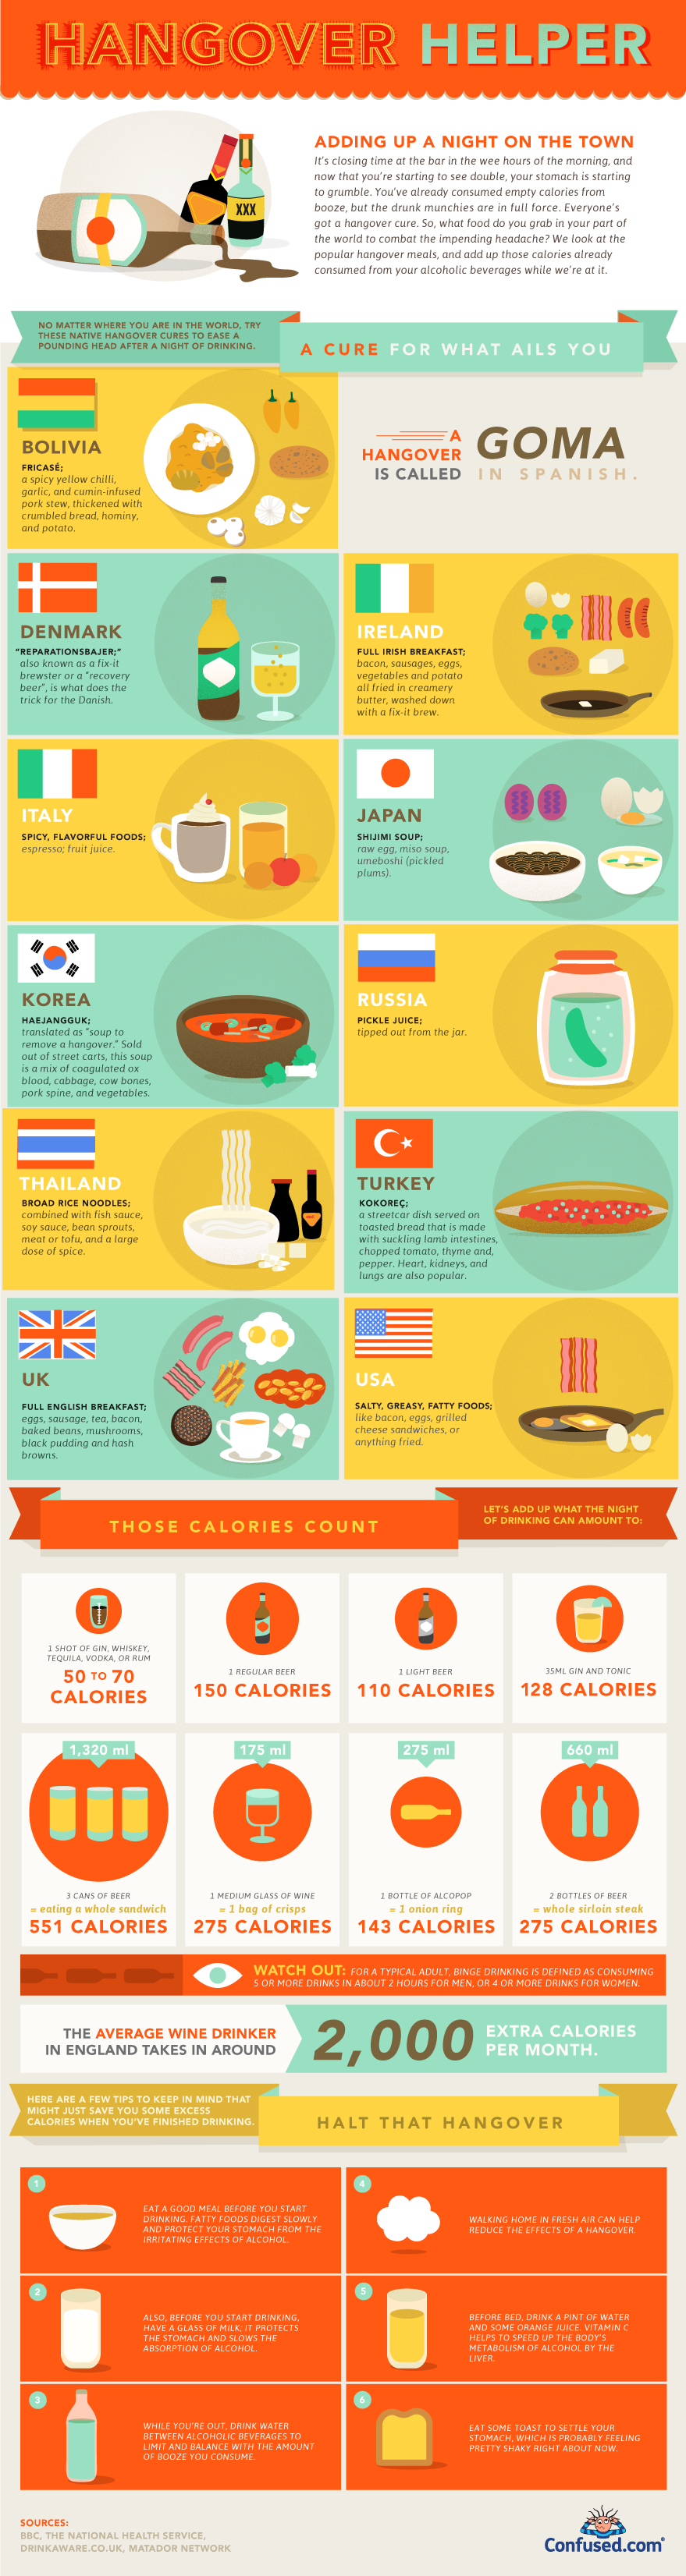 hangover-helper-infographic